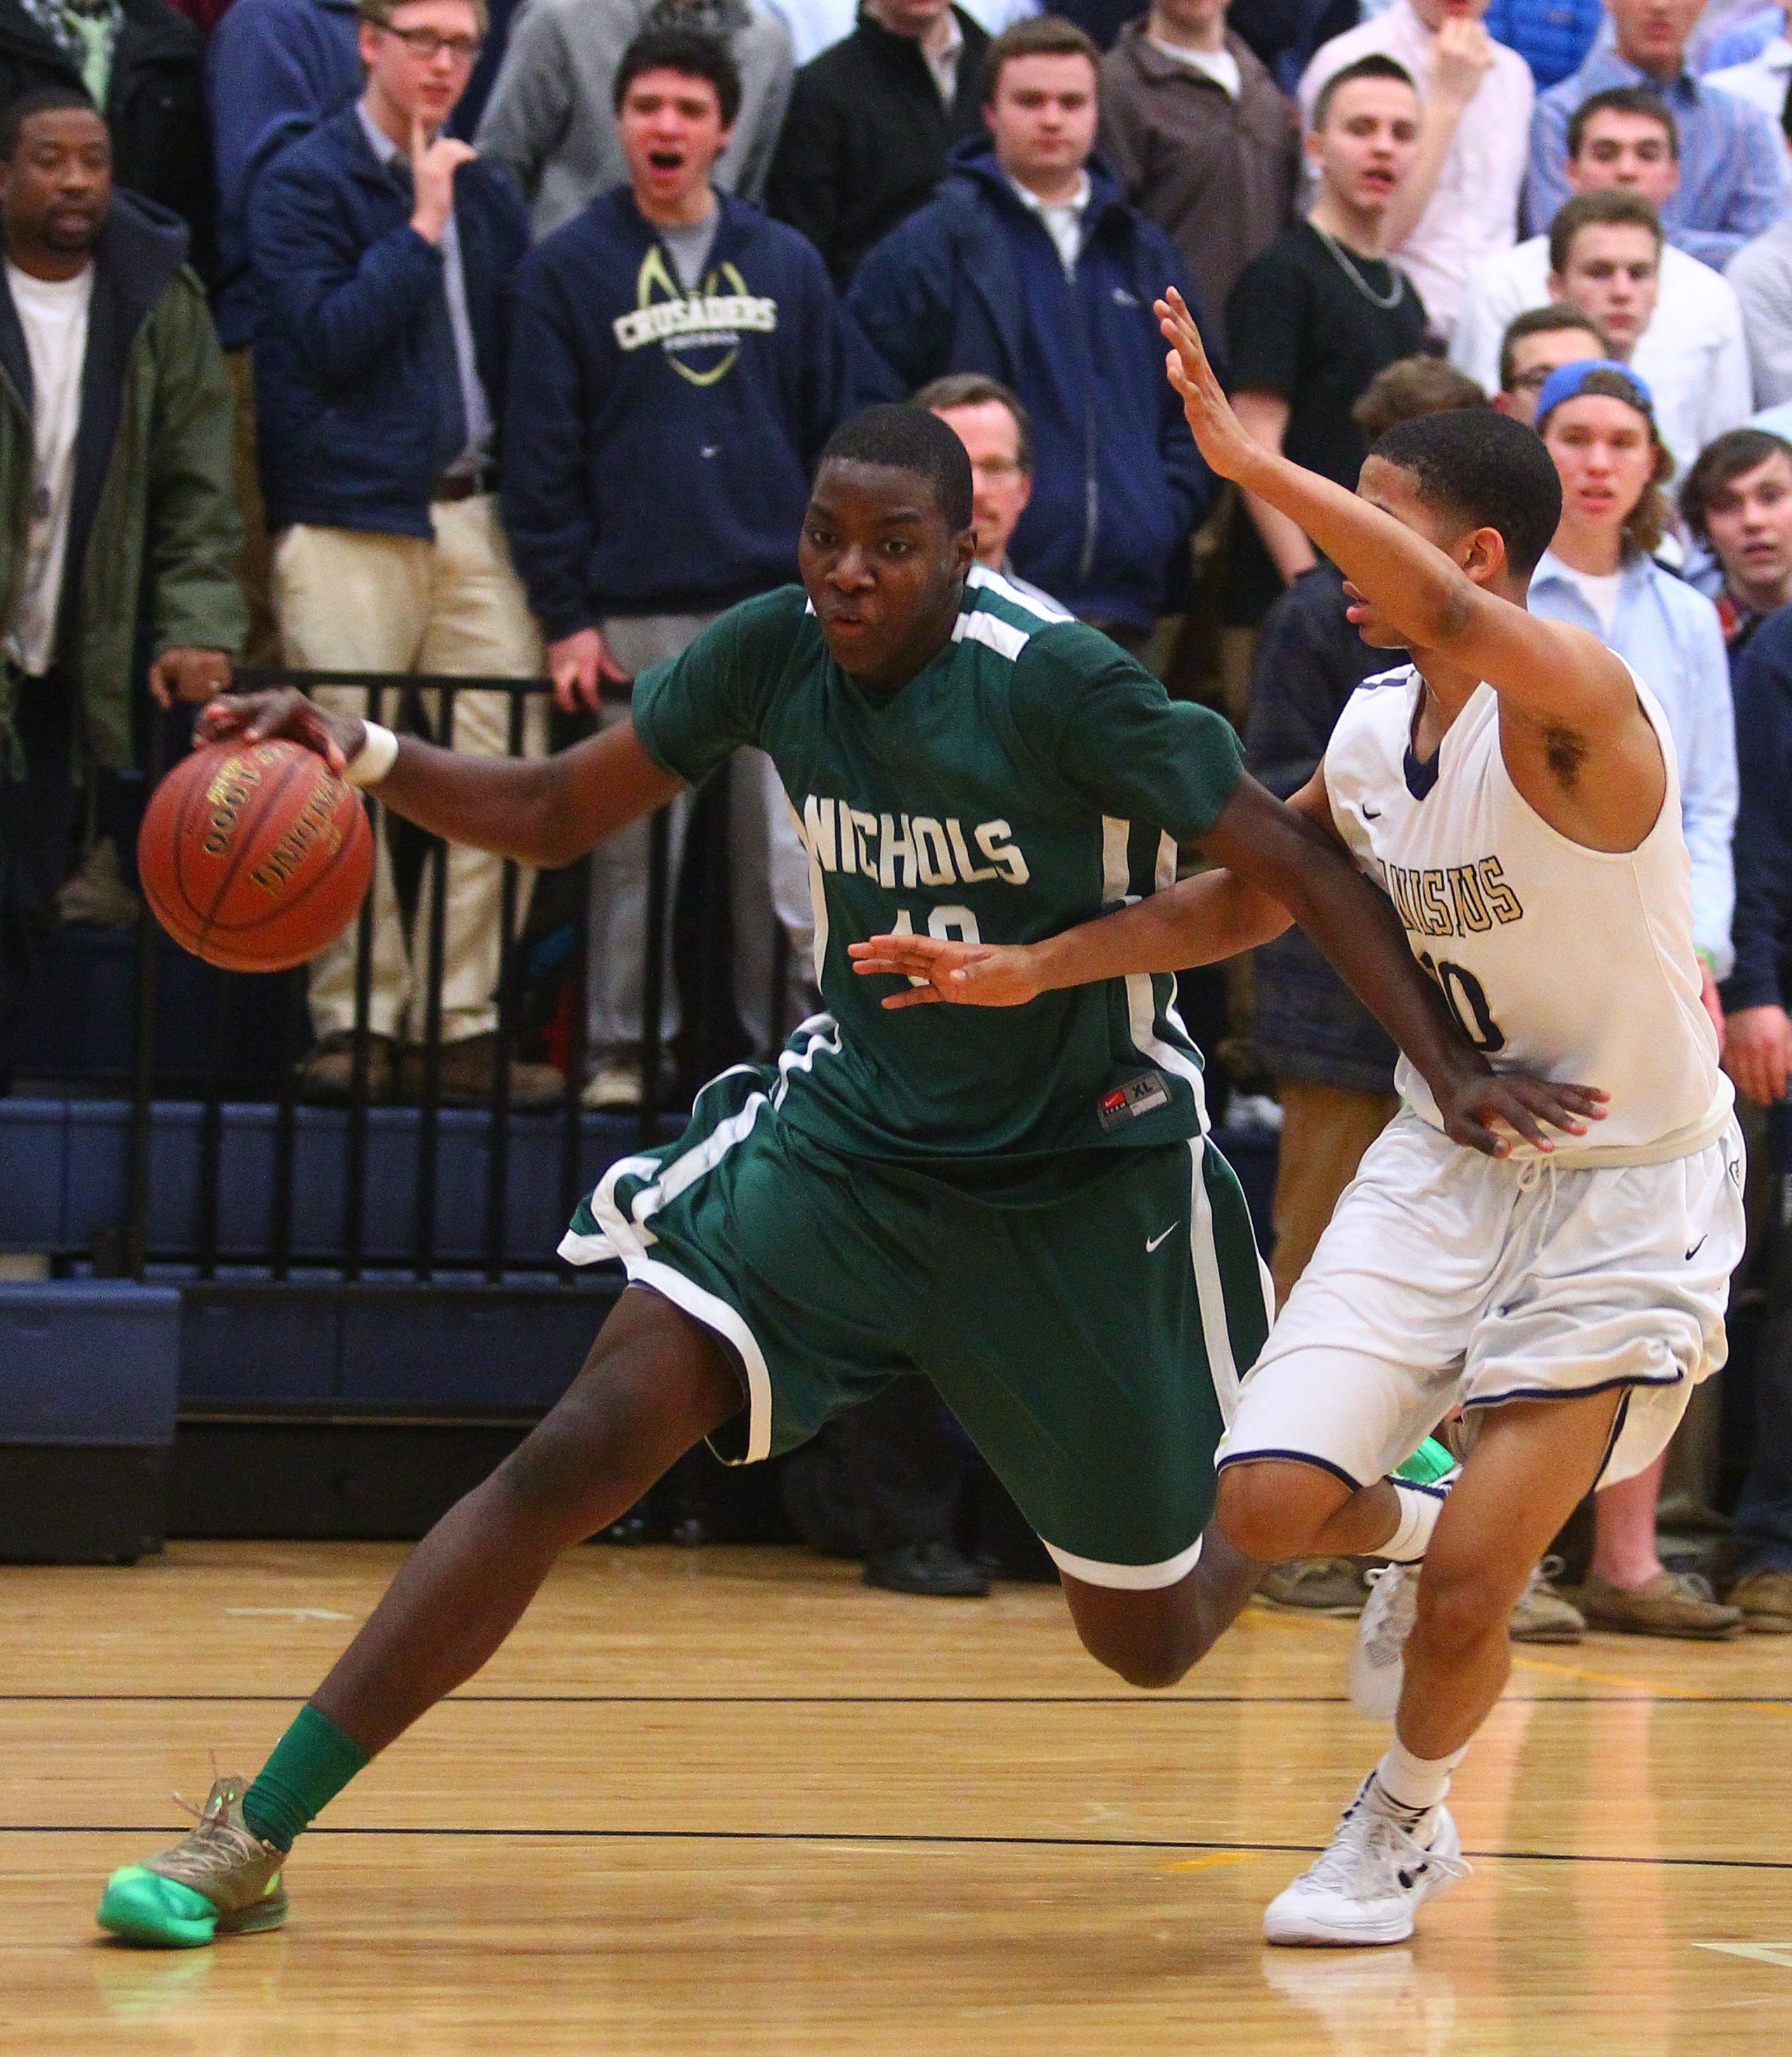 Cam Lewis of Nichols, driving around Canisius defender Howard Washington, led the Vikings with 22 points as they knocked off the No. 1 large school, 57-50.